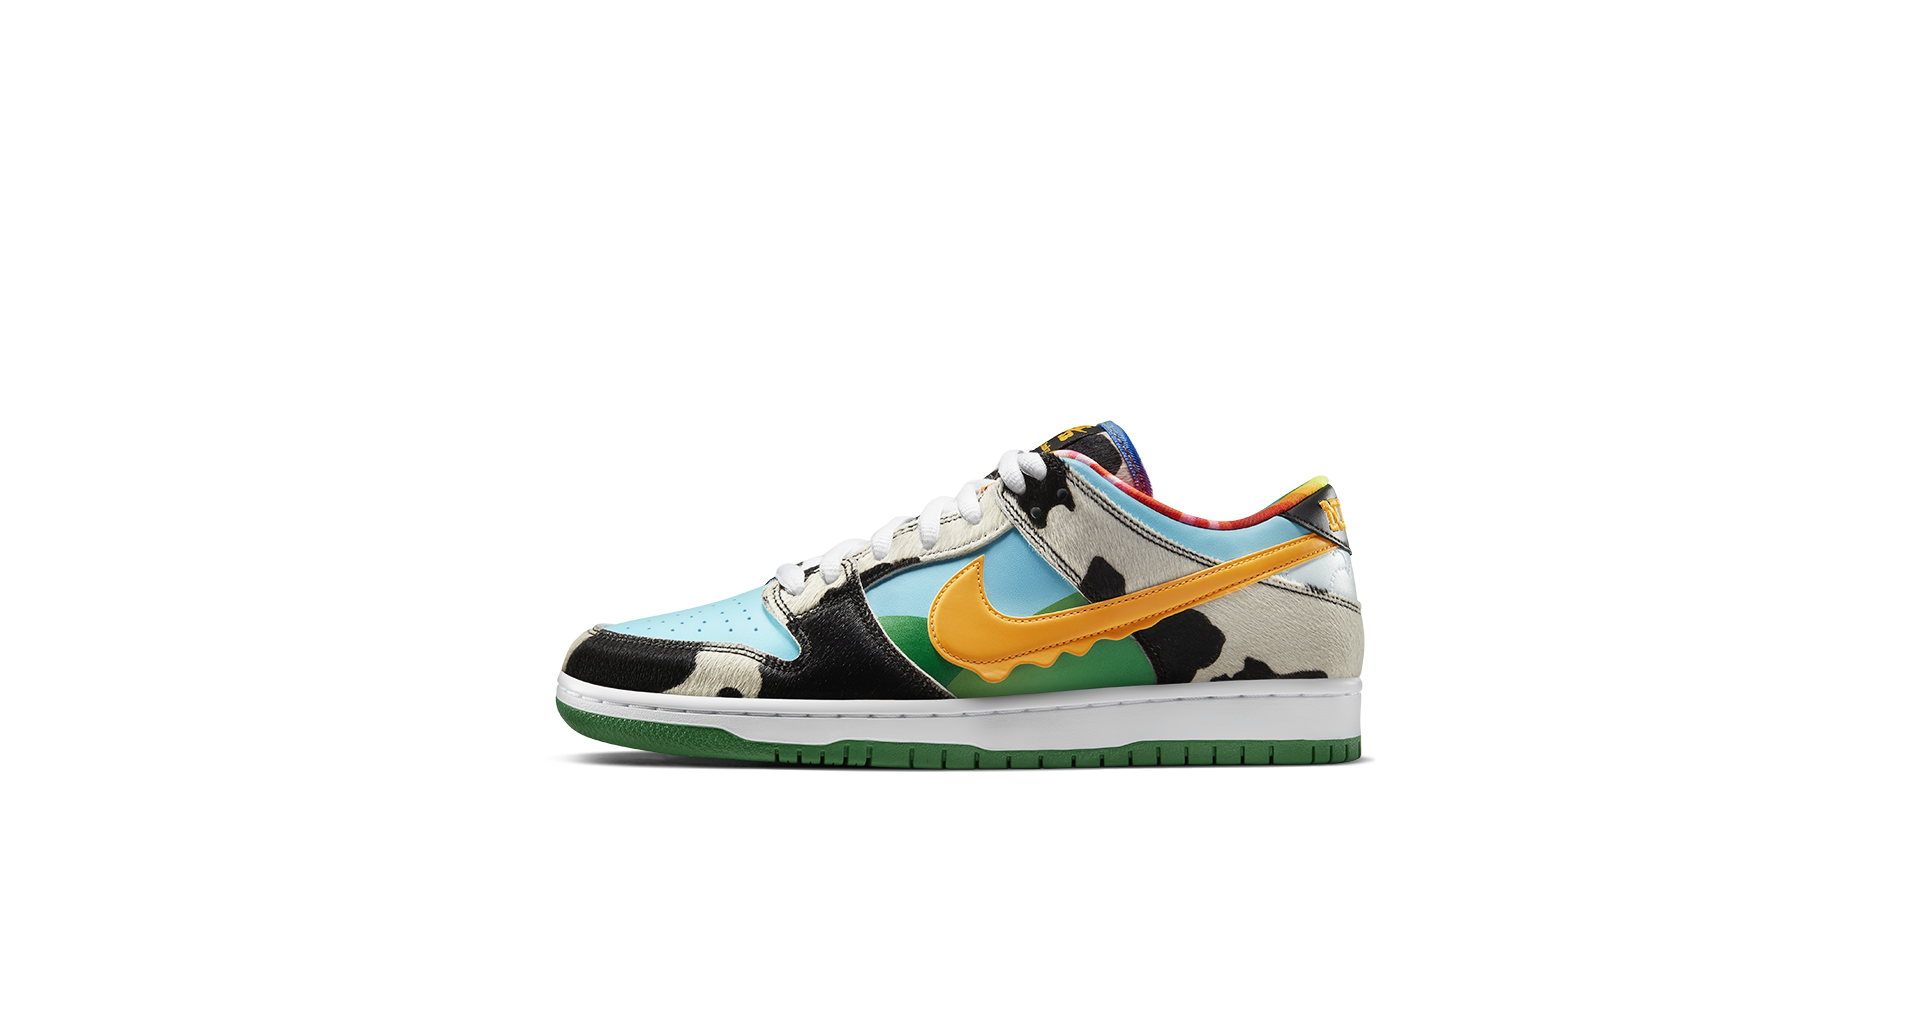 SB Dunk Low x Ben & Jerry's 'Chunky Dunky' Release Date ...